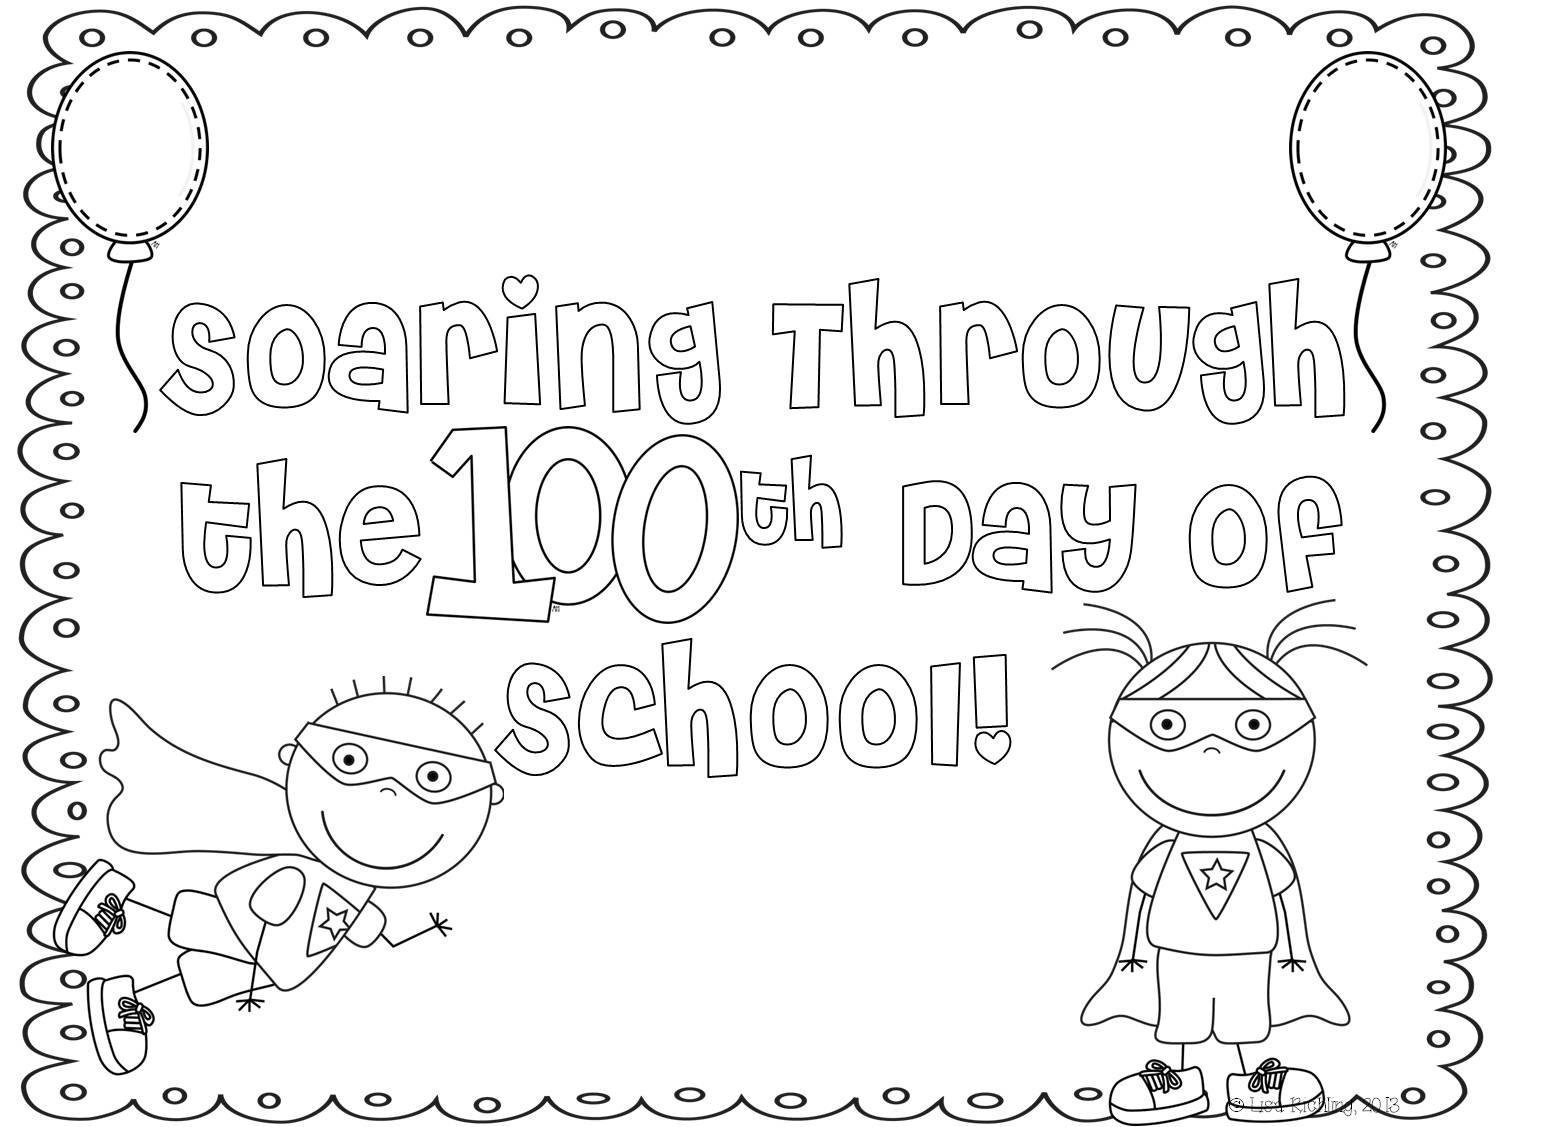 hundreth day coloring pages - photo#11